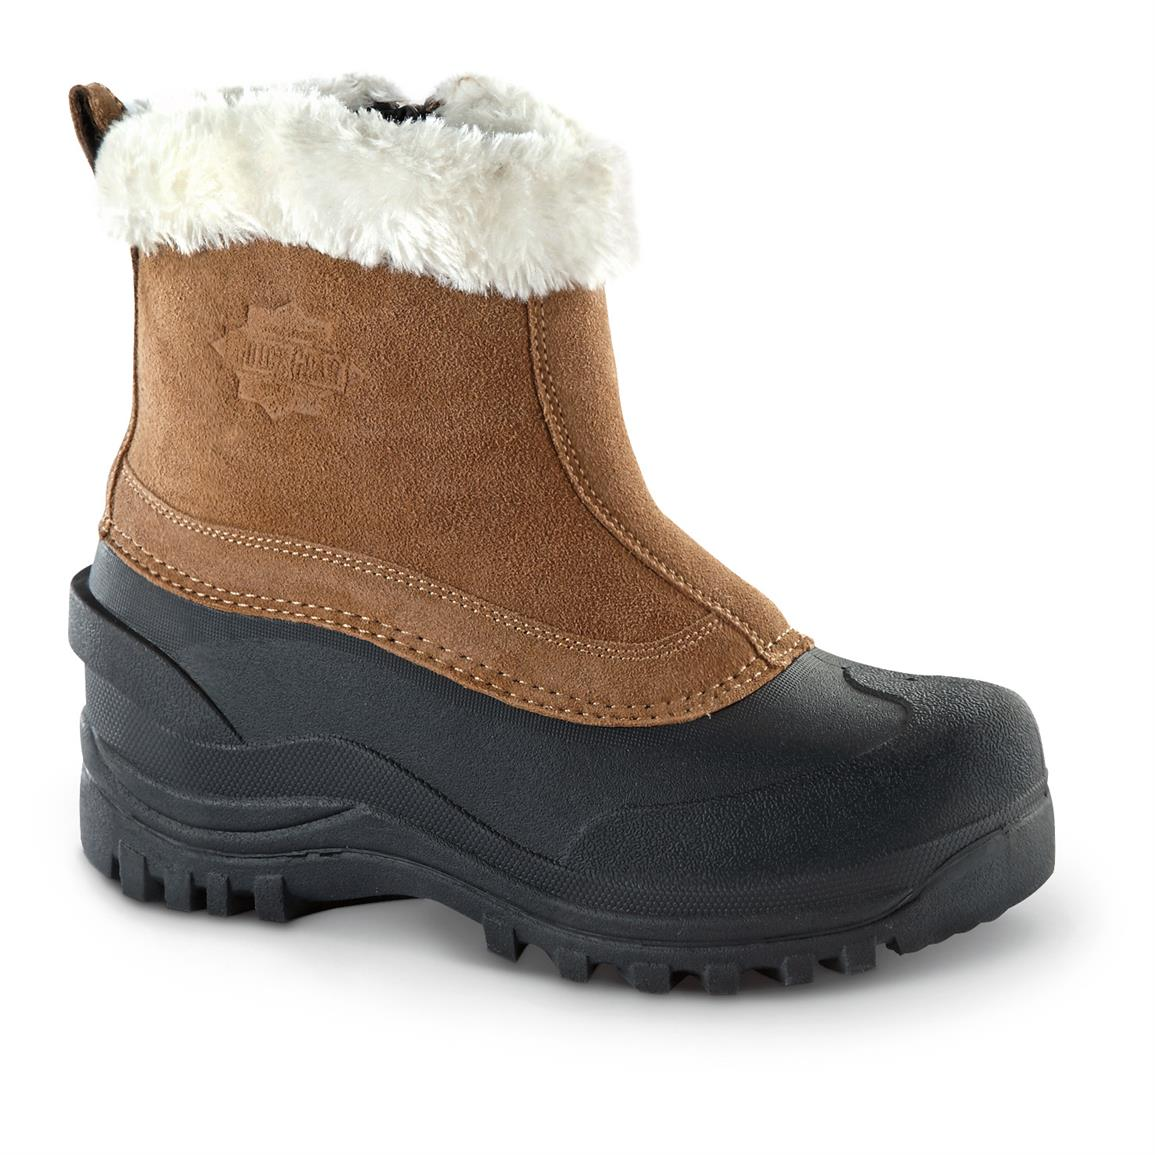 Guide Gear Women's Insulated Side-Zip Winter Boots, 400 Grams, Wool Collar